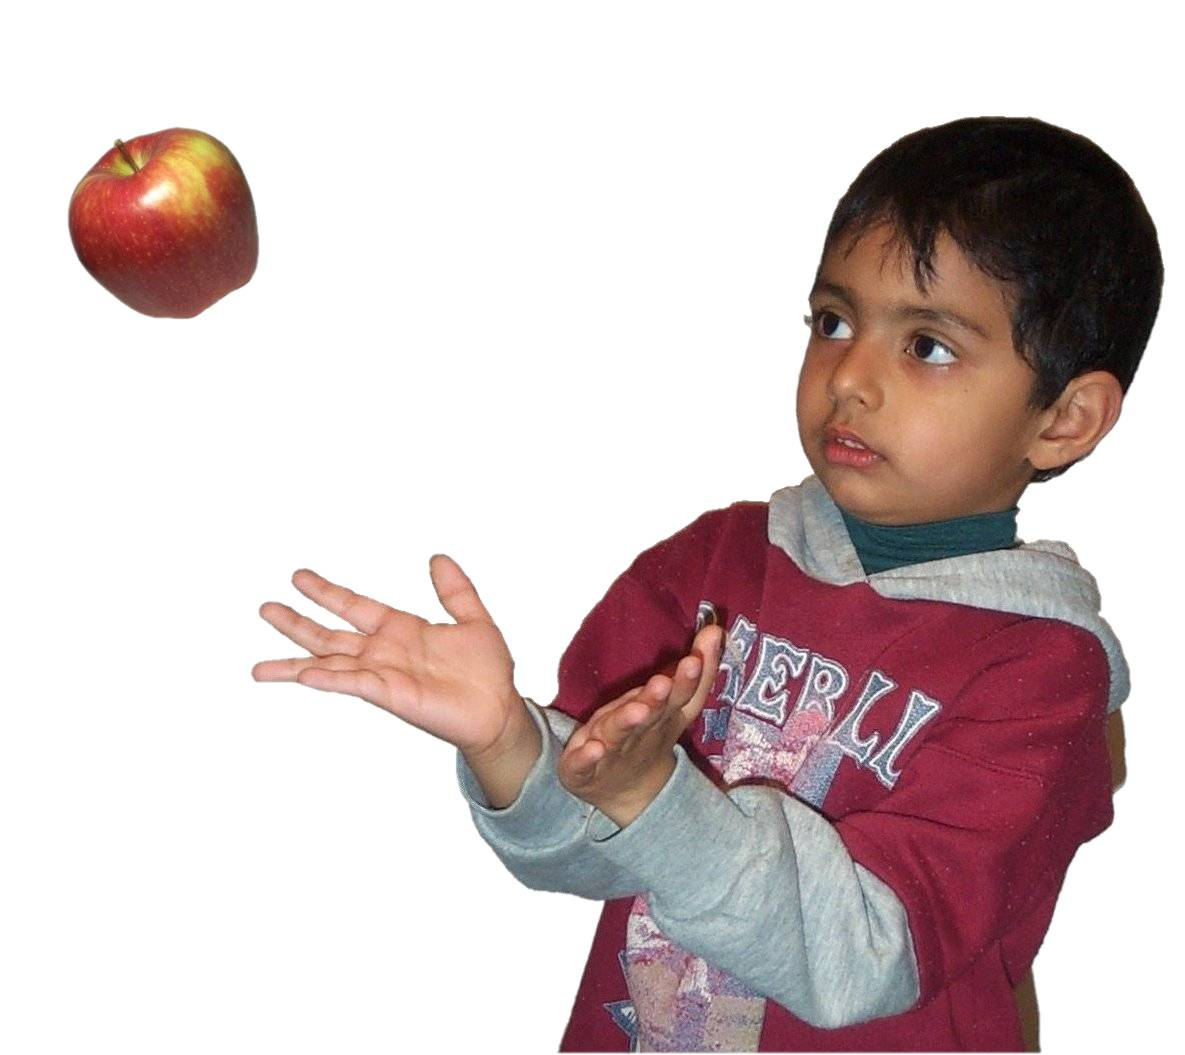 Boy catching apple.jpg